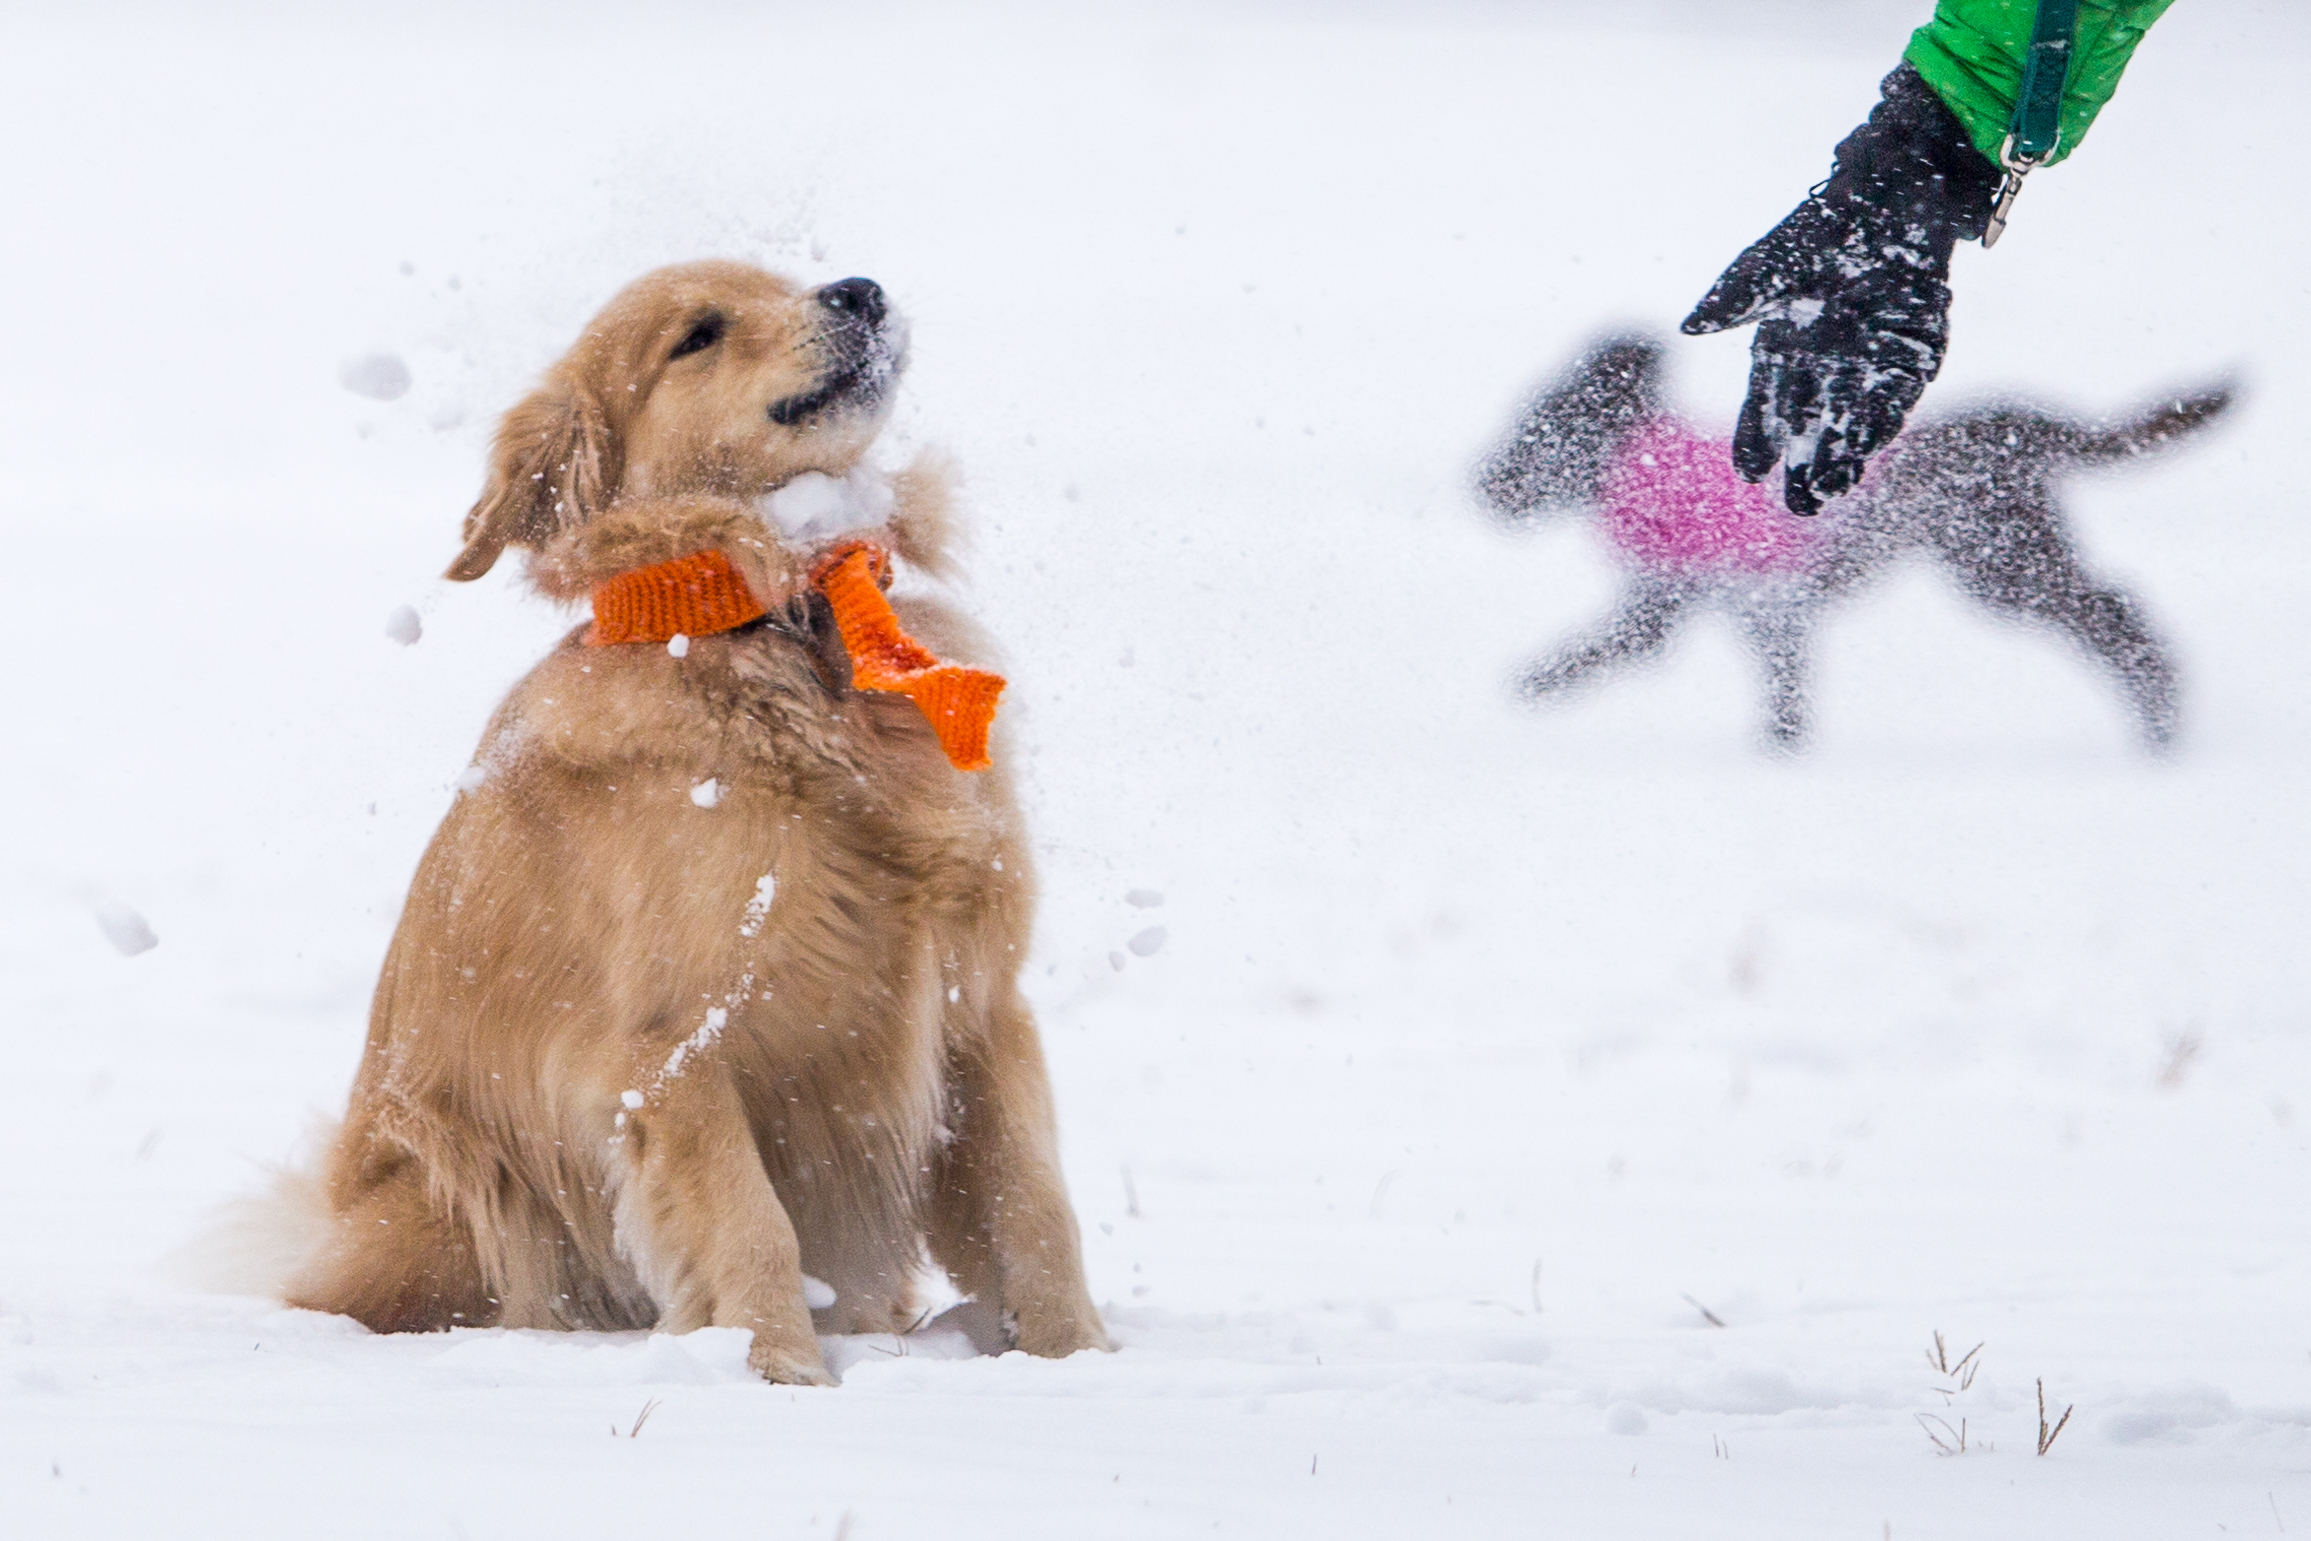 Murphy (left), a golden retriever, gets a face full of fresh snow from his owner John Taulane, of Boston, in the Boston Common Dec. 17, 2016.